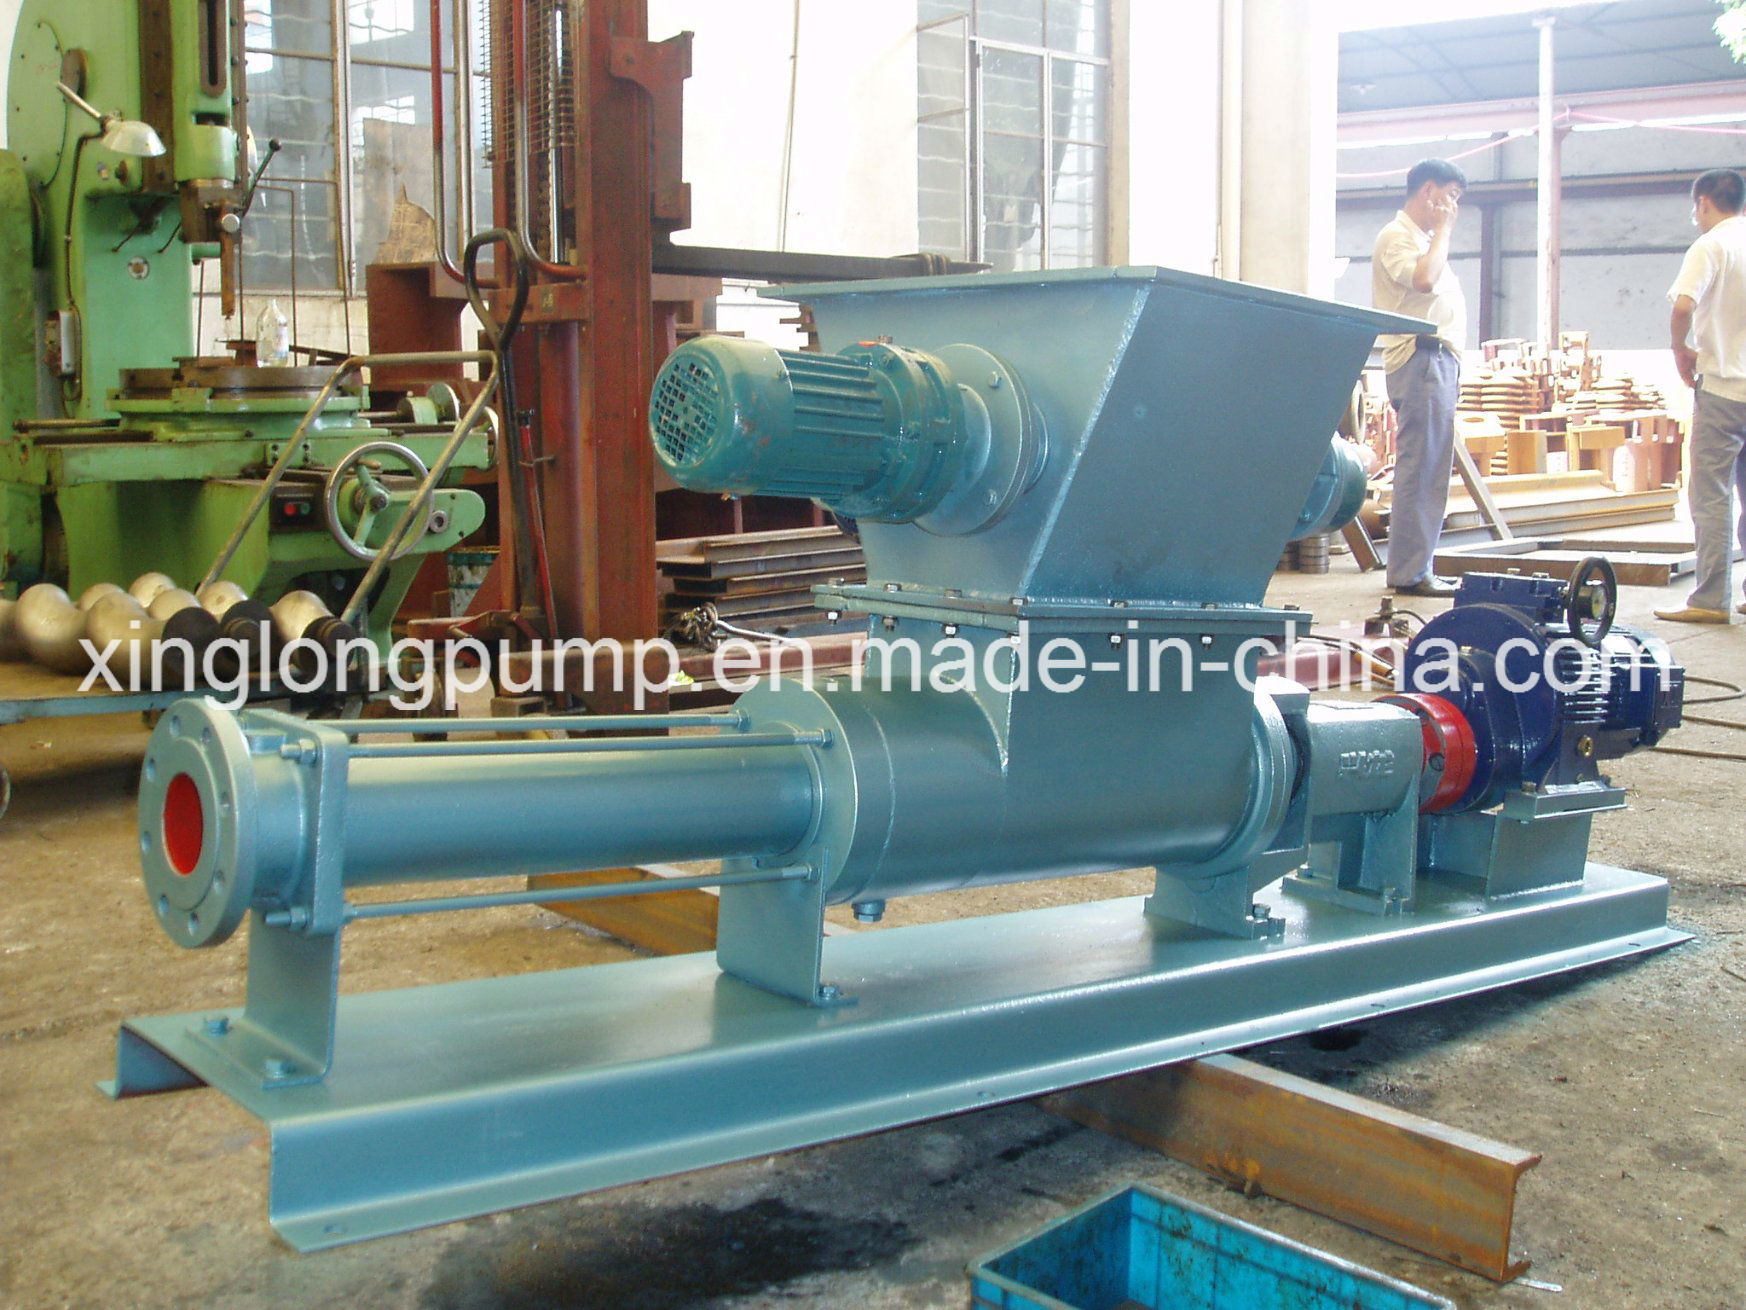 China Pump Manufacturer Xg Type Mono Progressing Pump